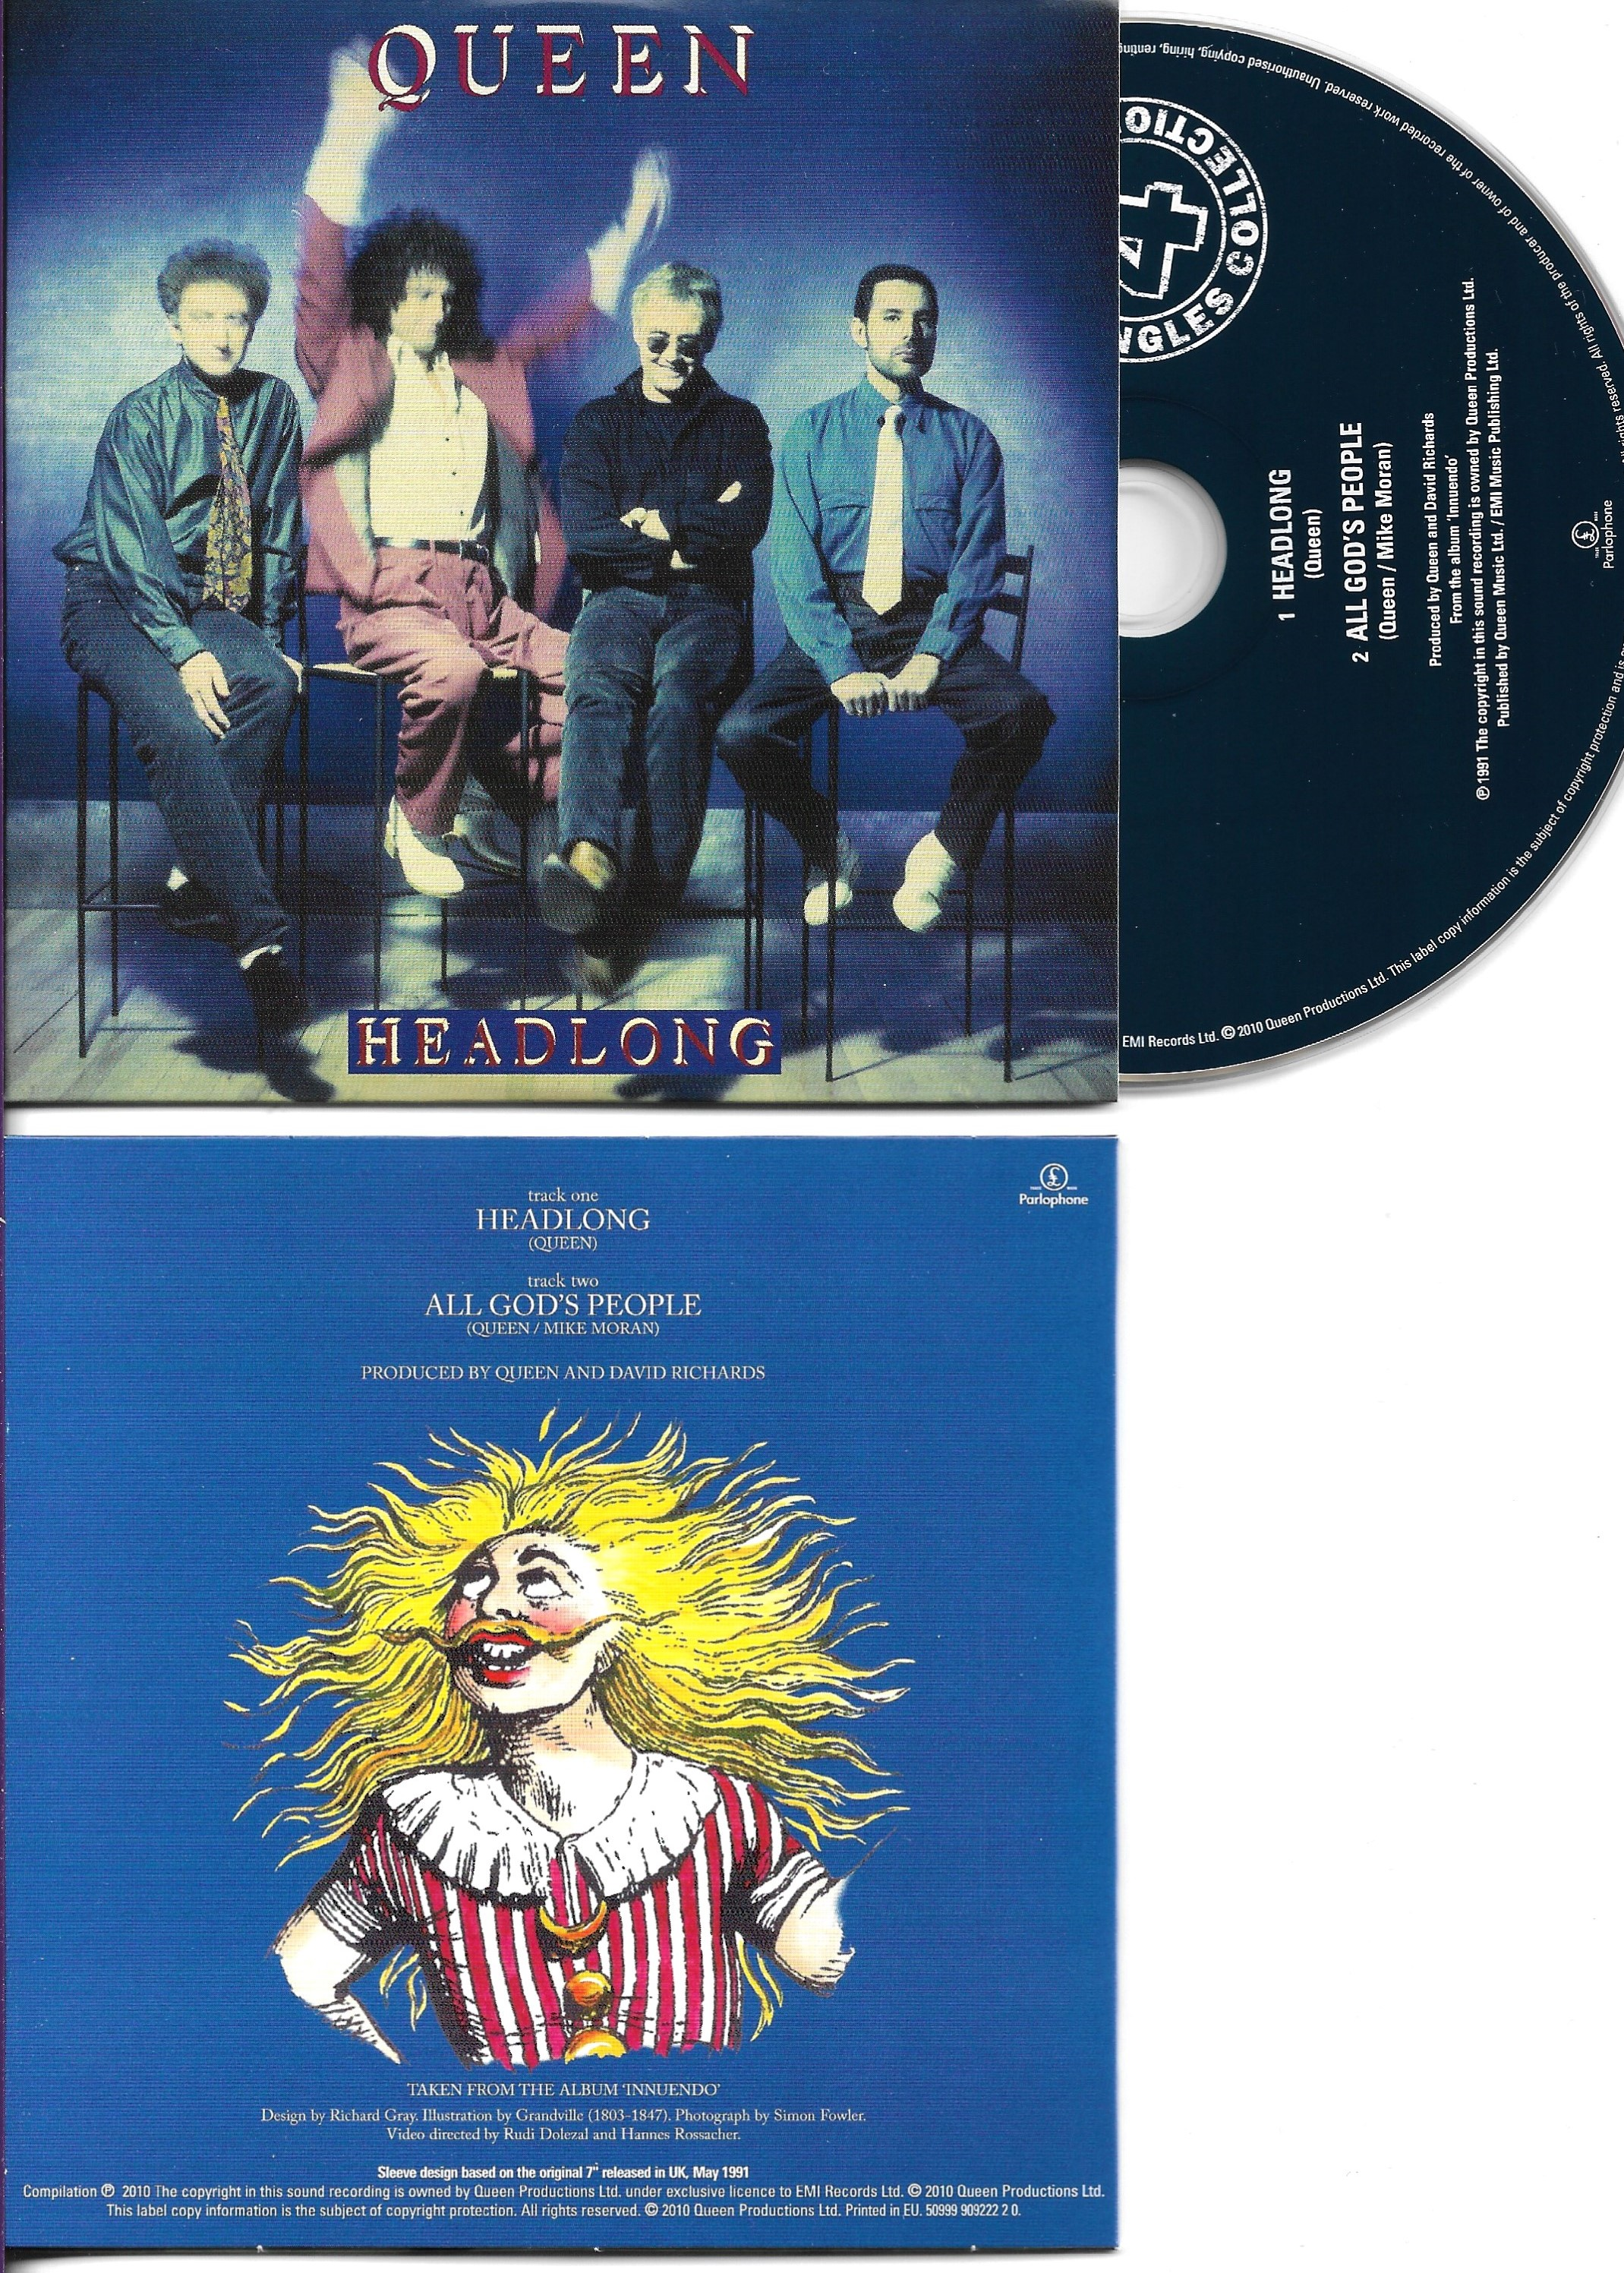 QUEEN - Headlong + Uk + 2-track Card Sleeve - - Reedition Du 45t Original - - Reissue Of Original 7""